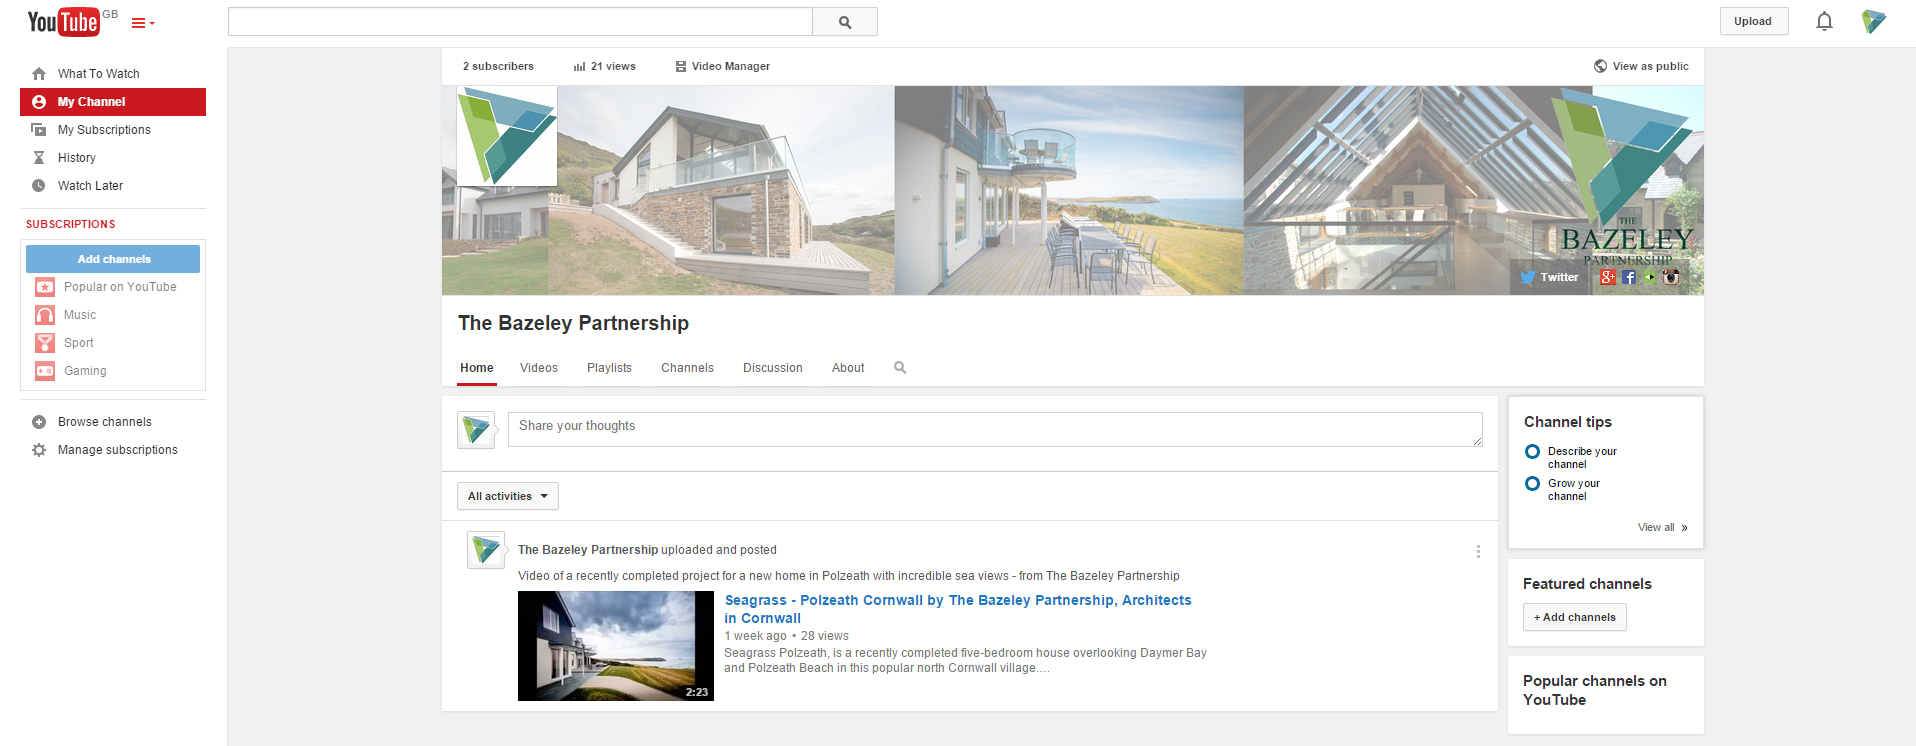 YouTube channel The Bazeley Partnership Architects in Cornwall